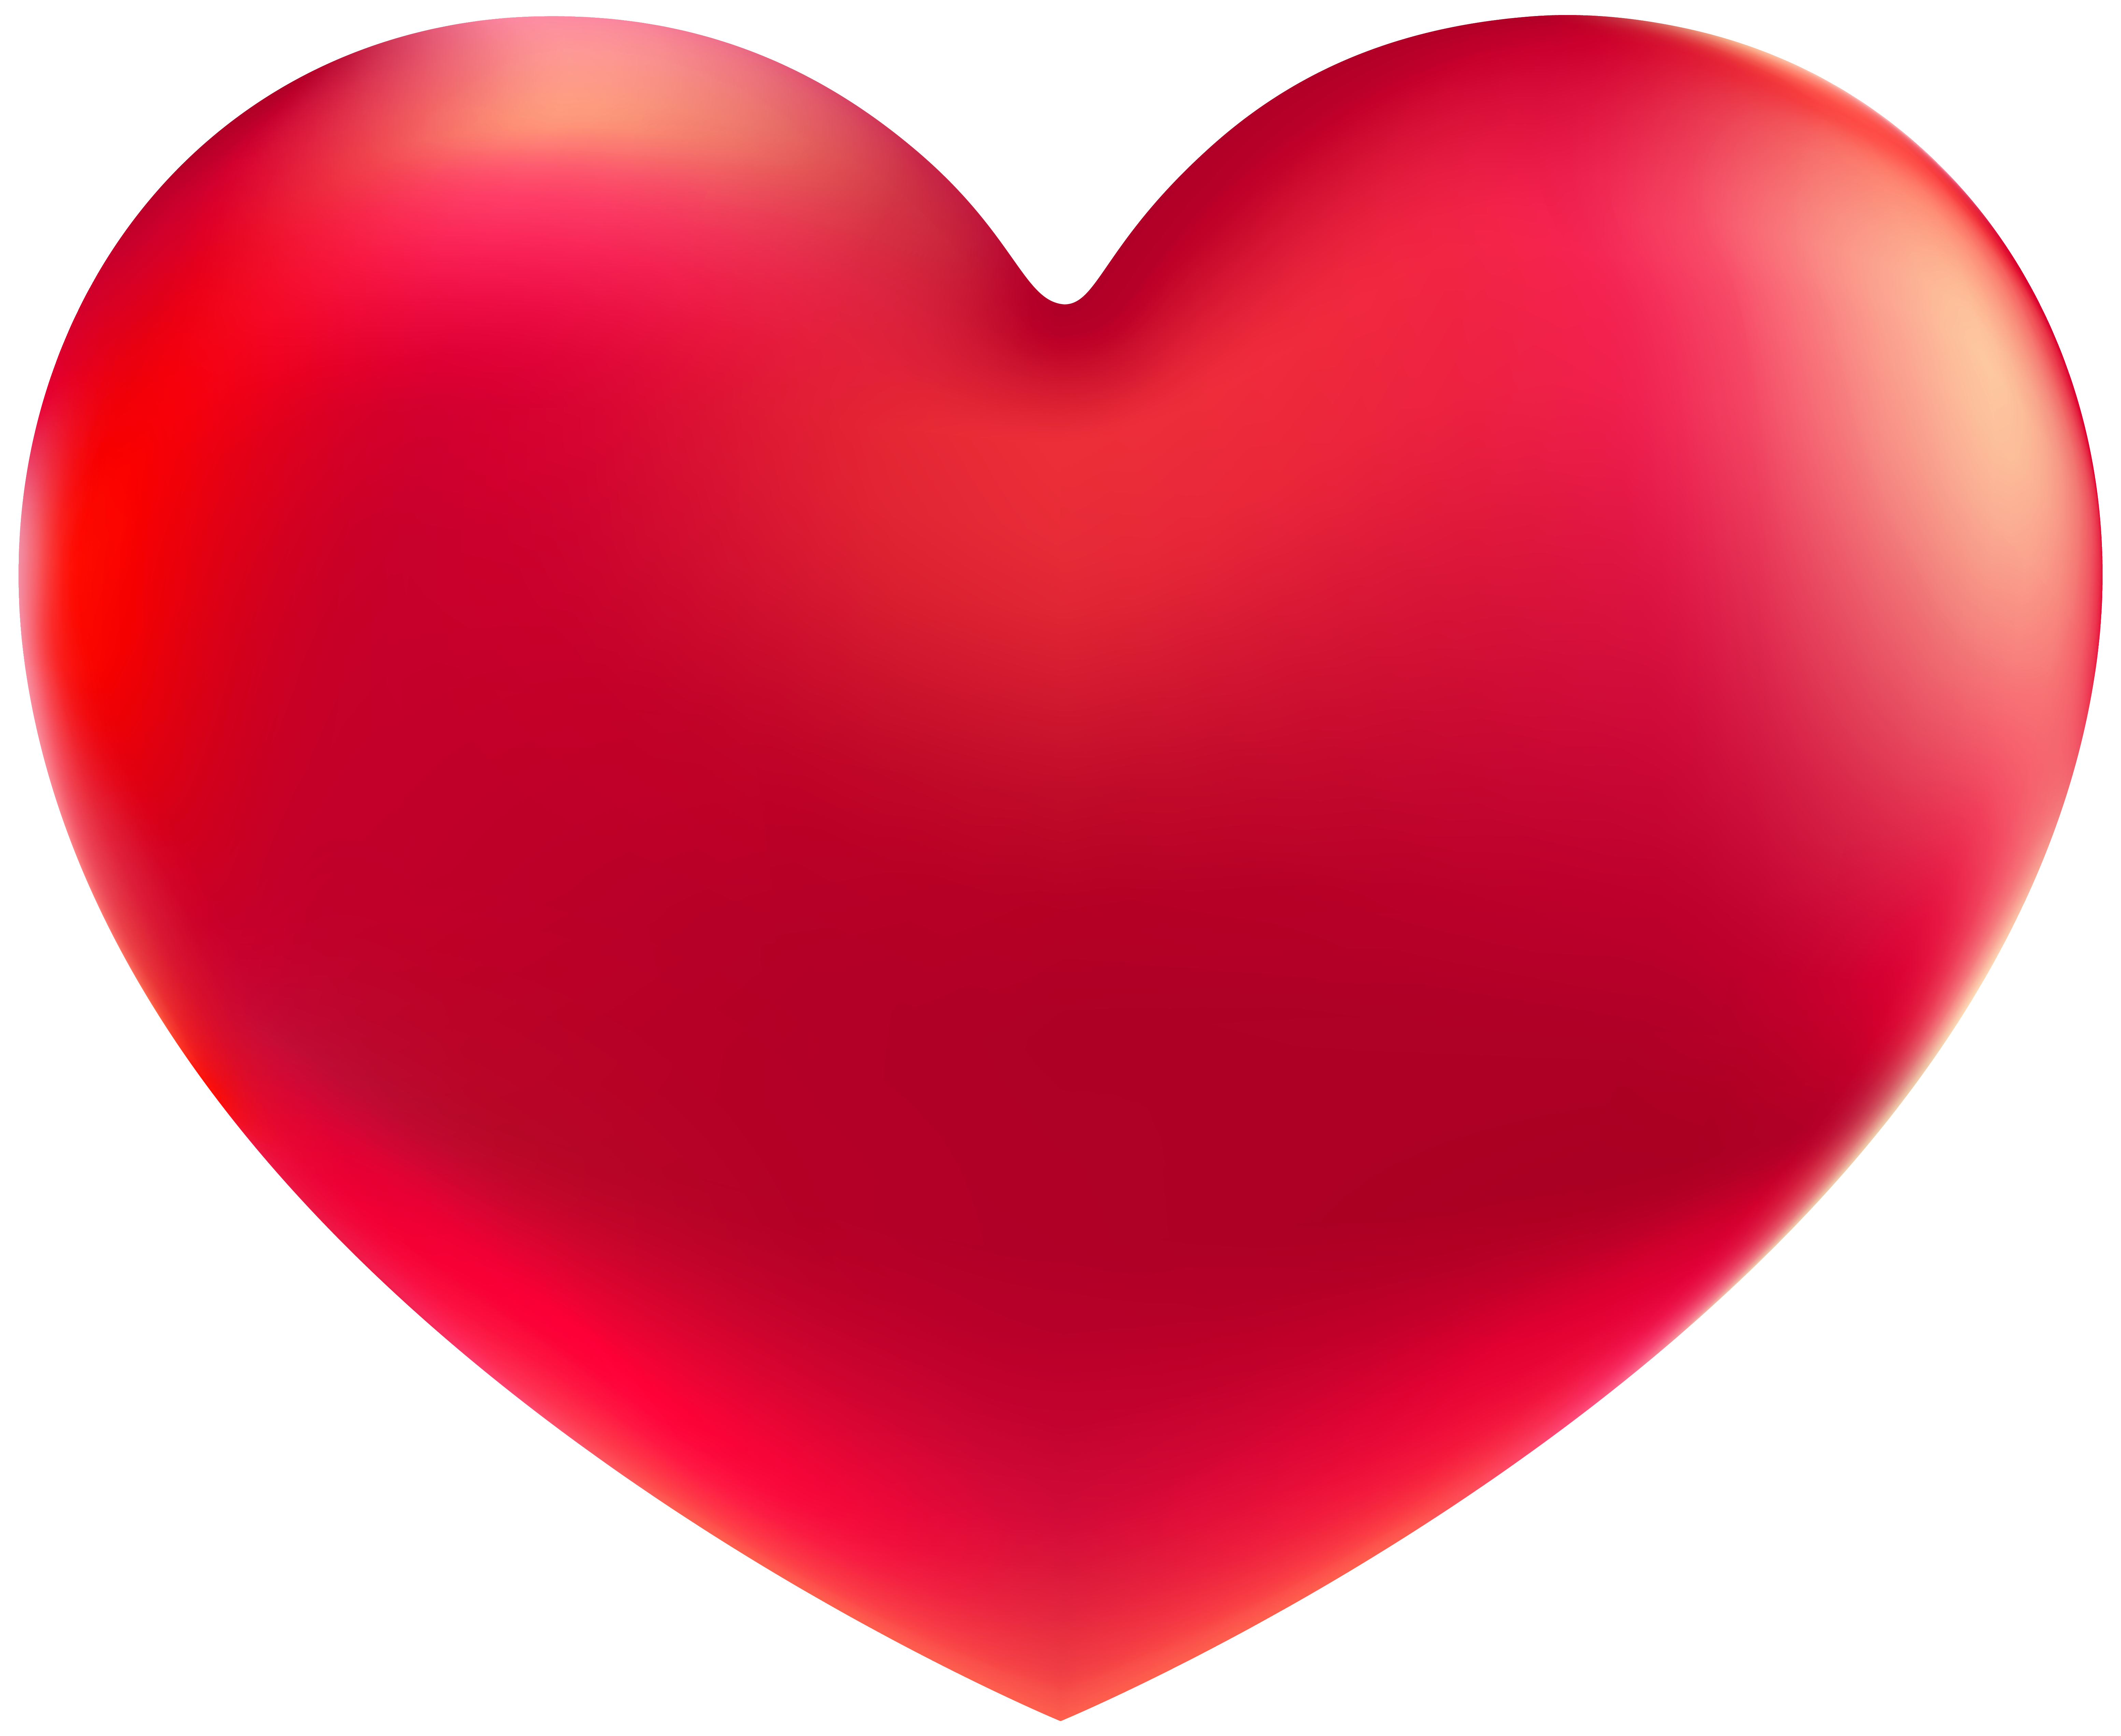 Red Heart PNG Clipart Image.